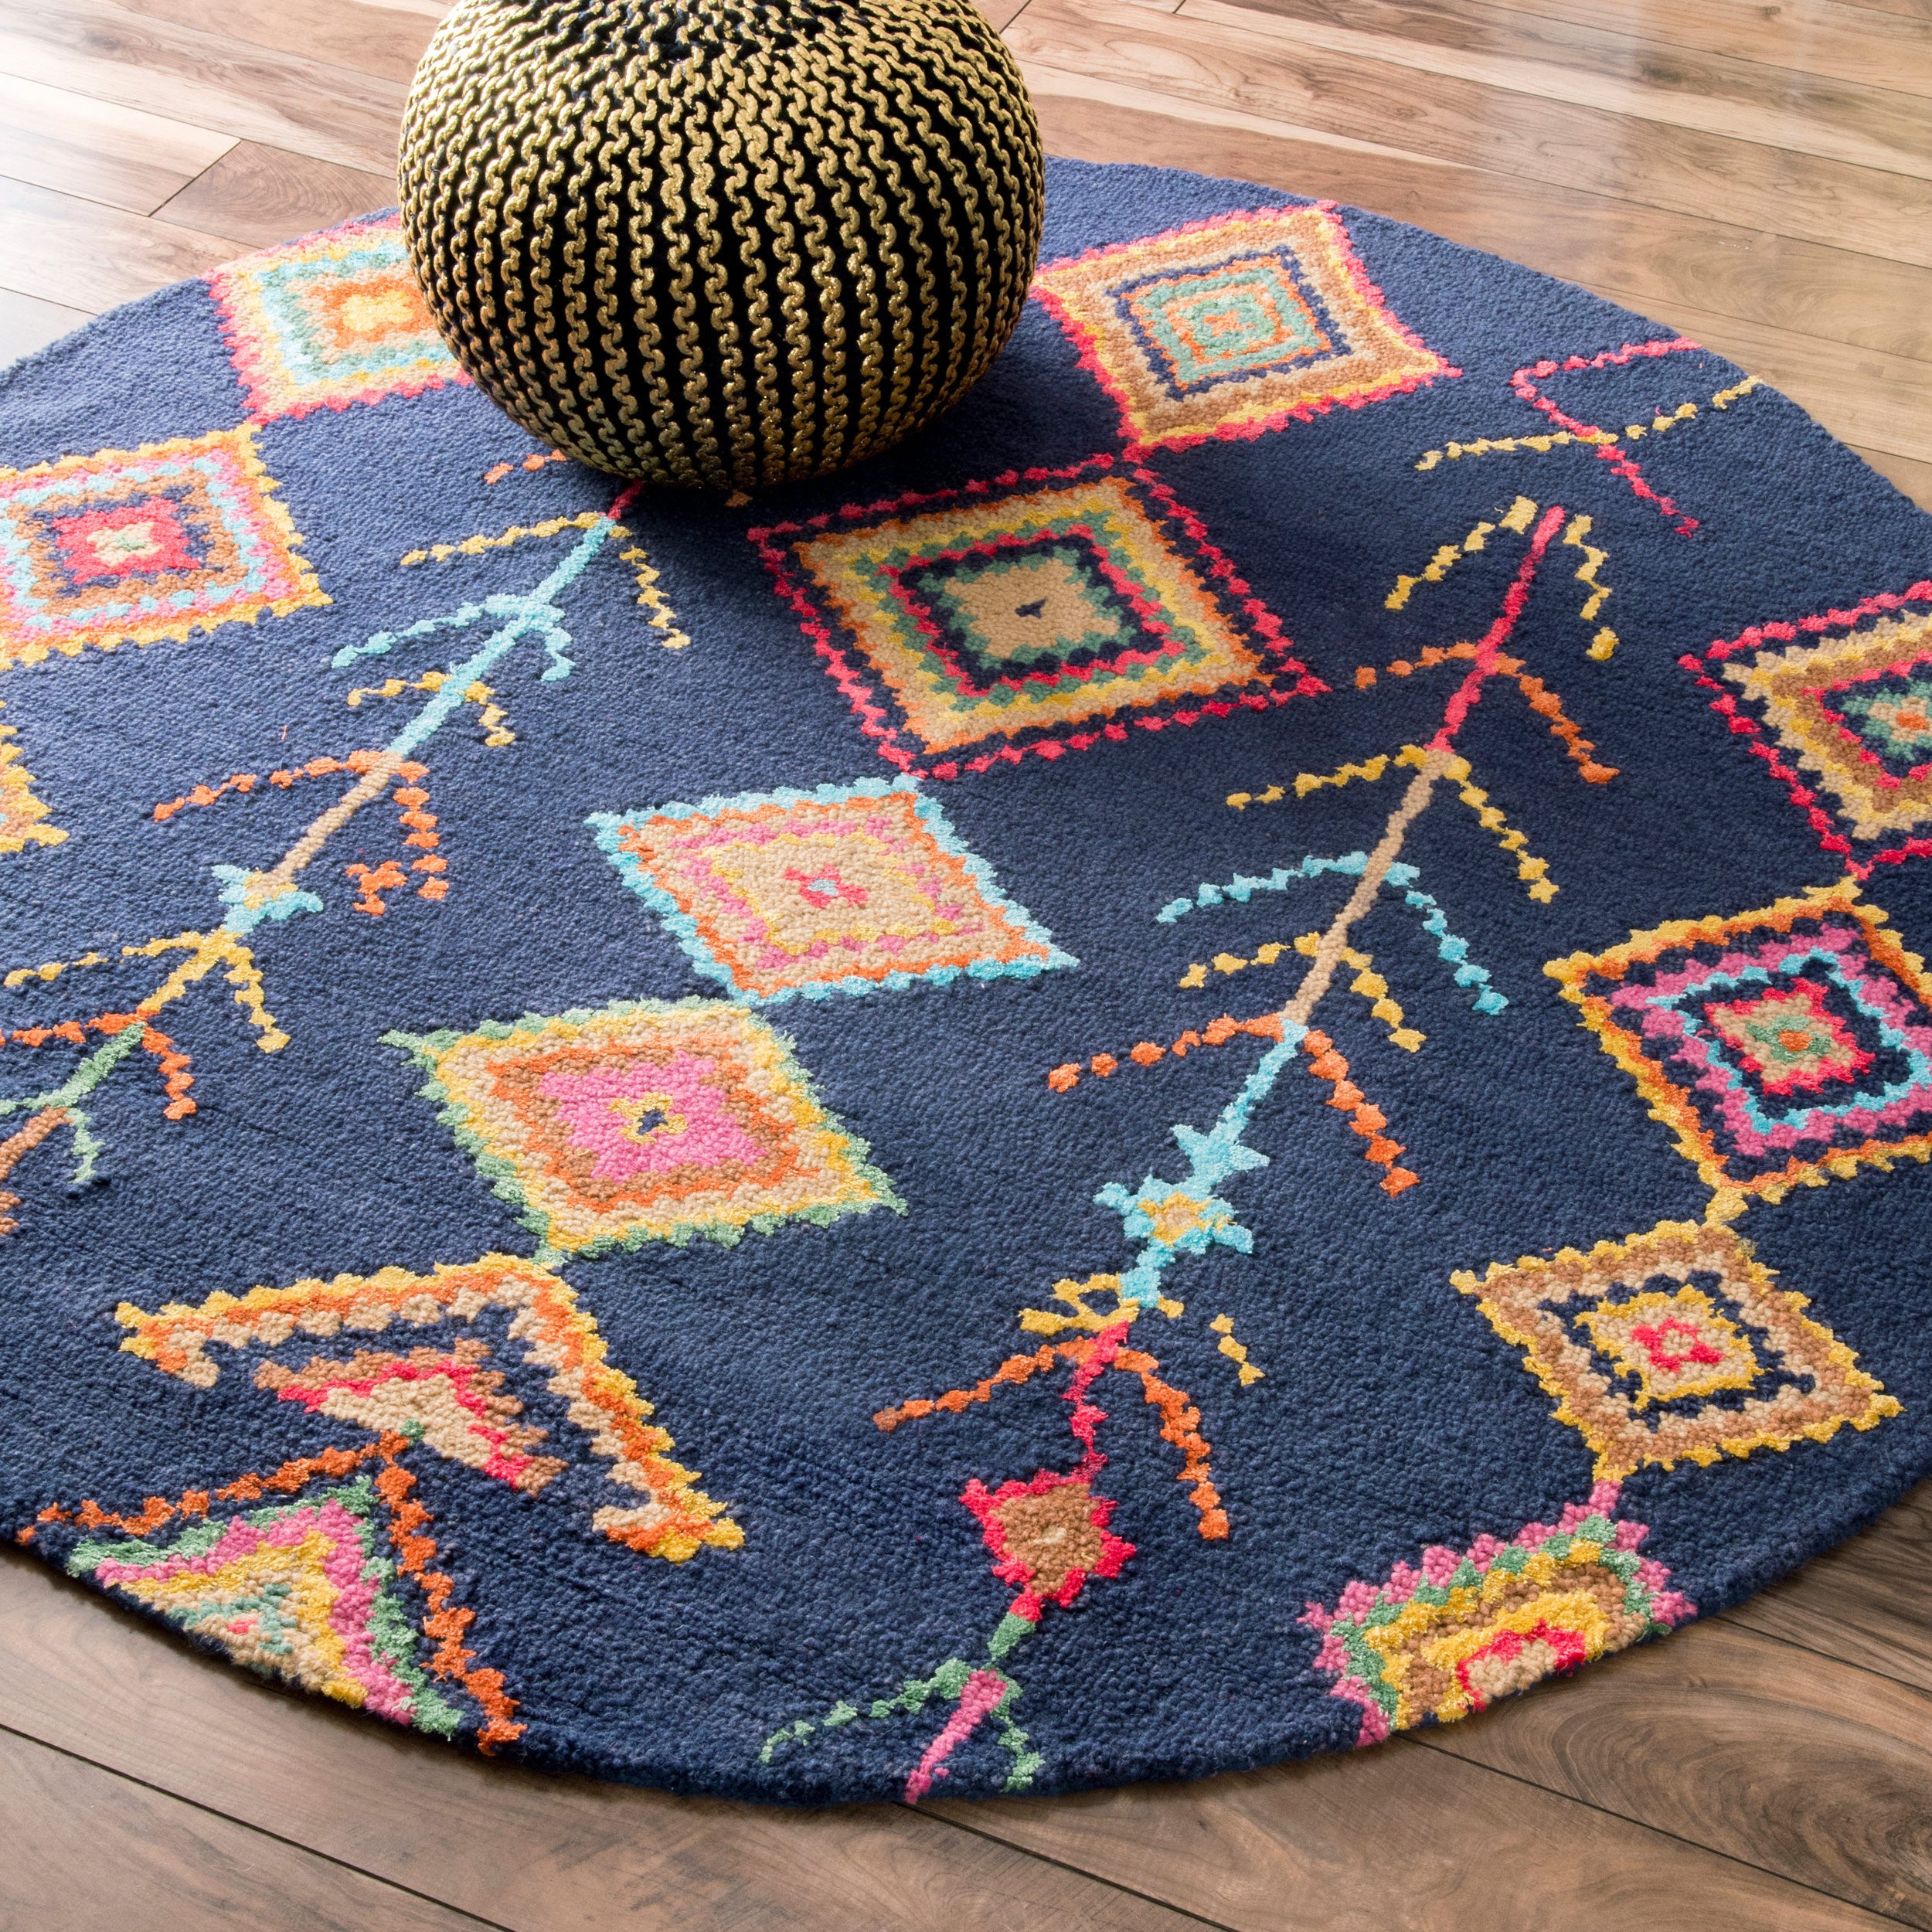 Nuloom Contemporary Handmade Wool Viscose Moroccan Triangle Navy 6 Foot Round Rug